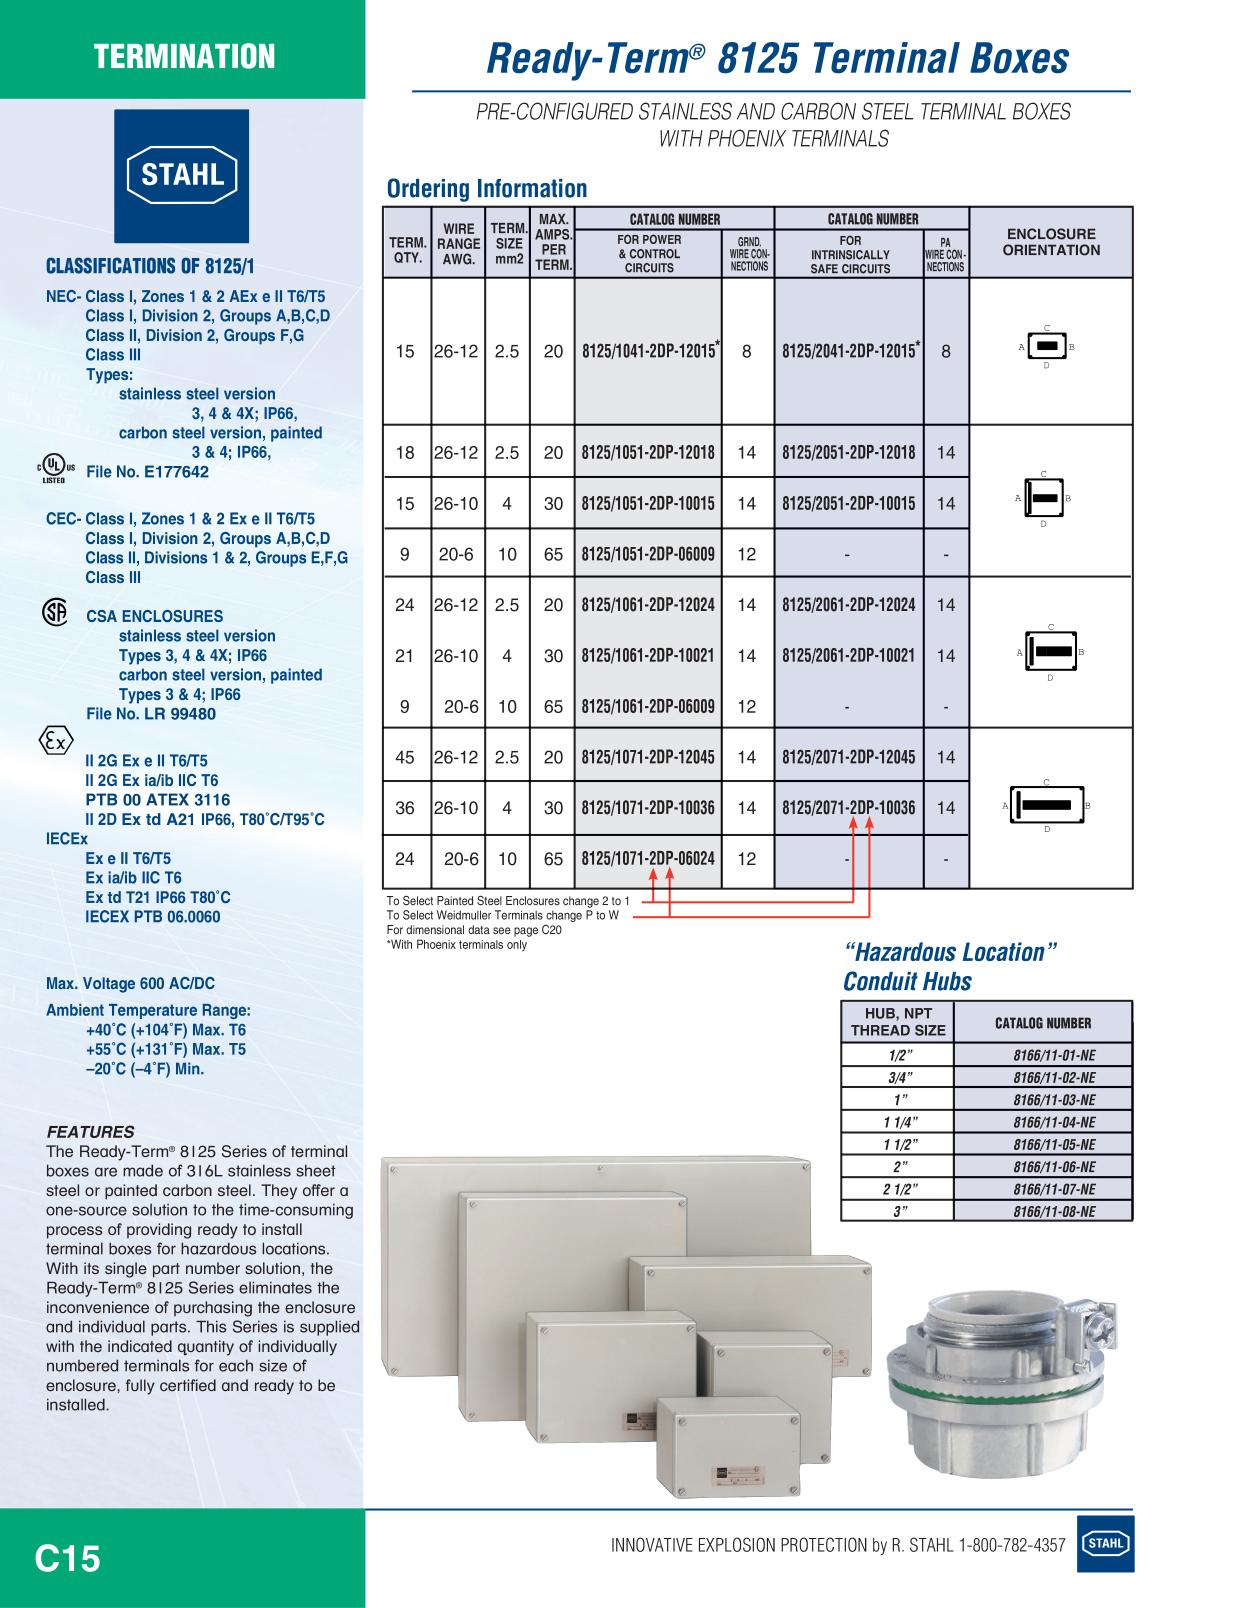 R Stahl Electrical Catalog 9016 - Page C15 Terminal Boxes